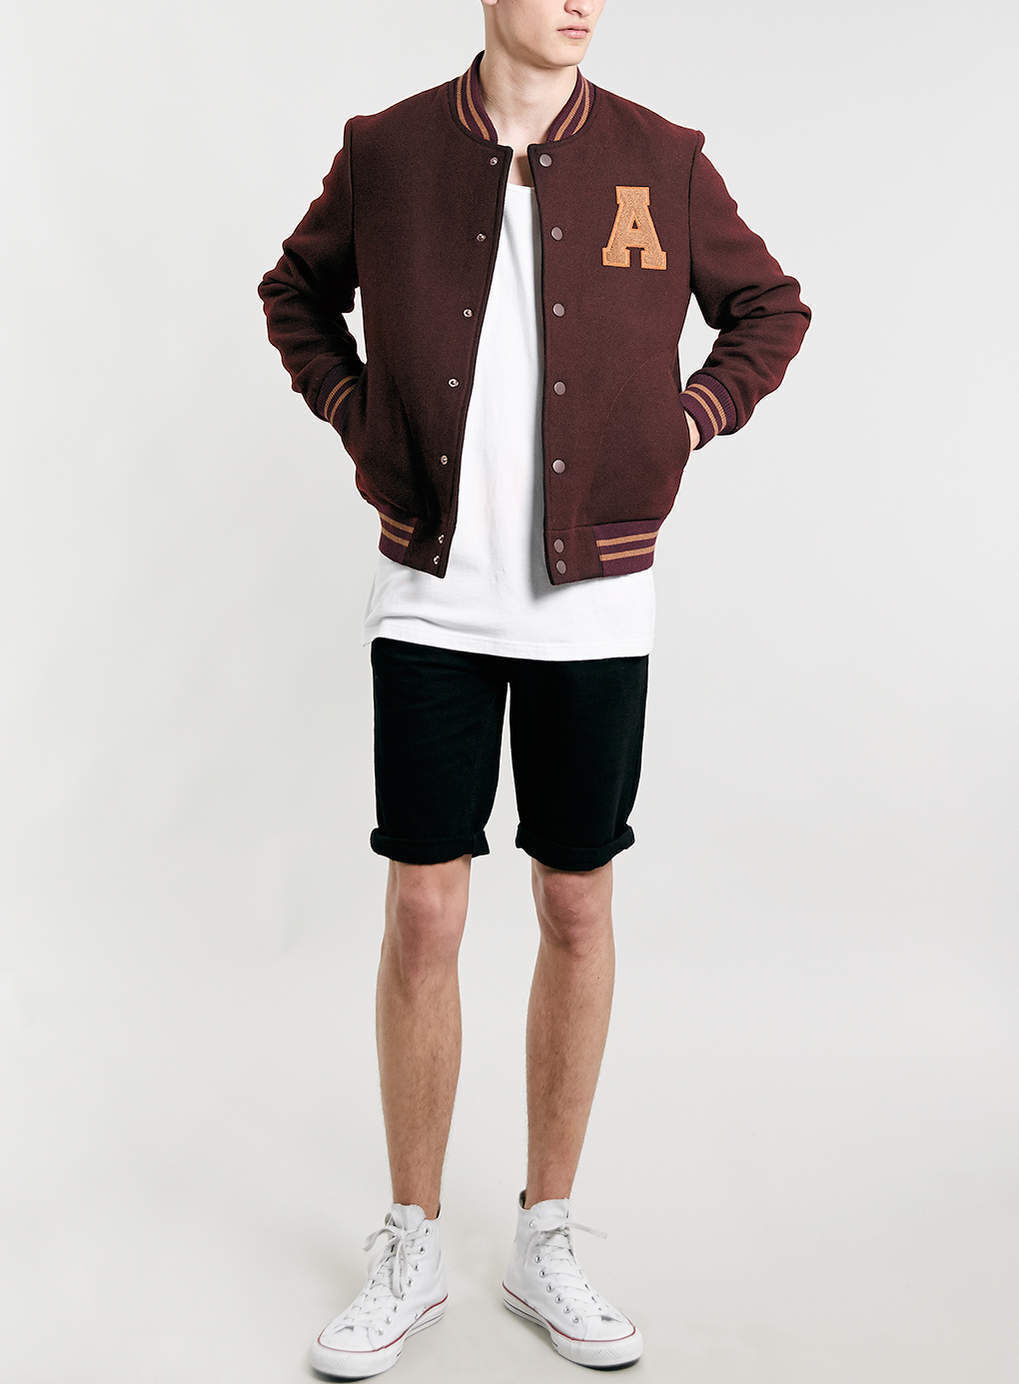 Mens gloves topman - The Topman Burgundy Bomber Jacket